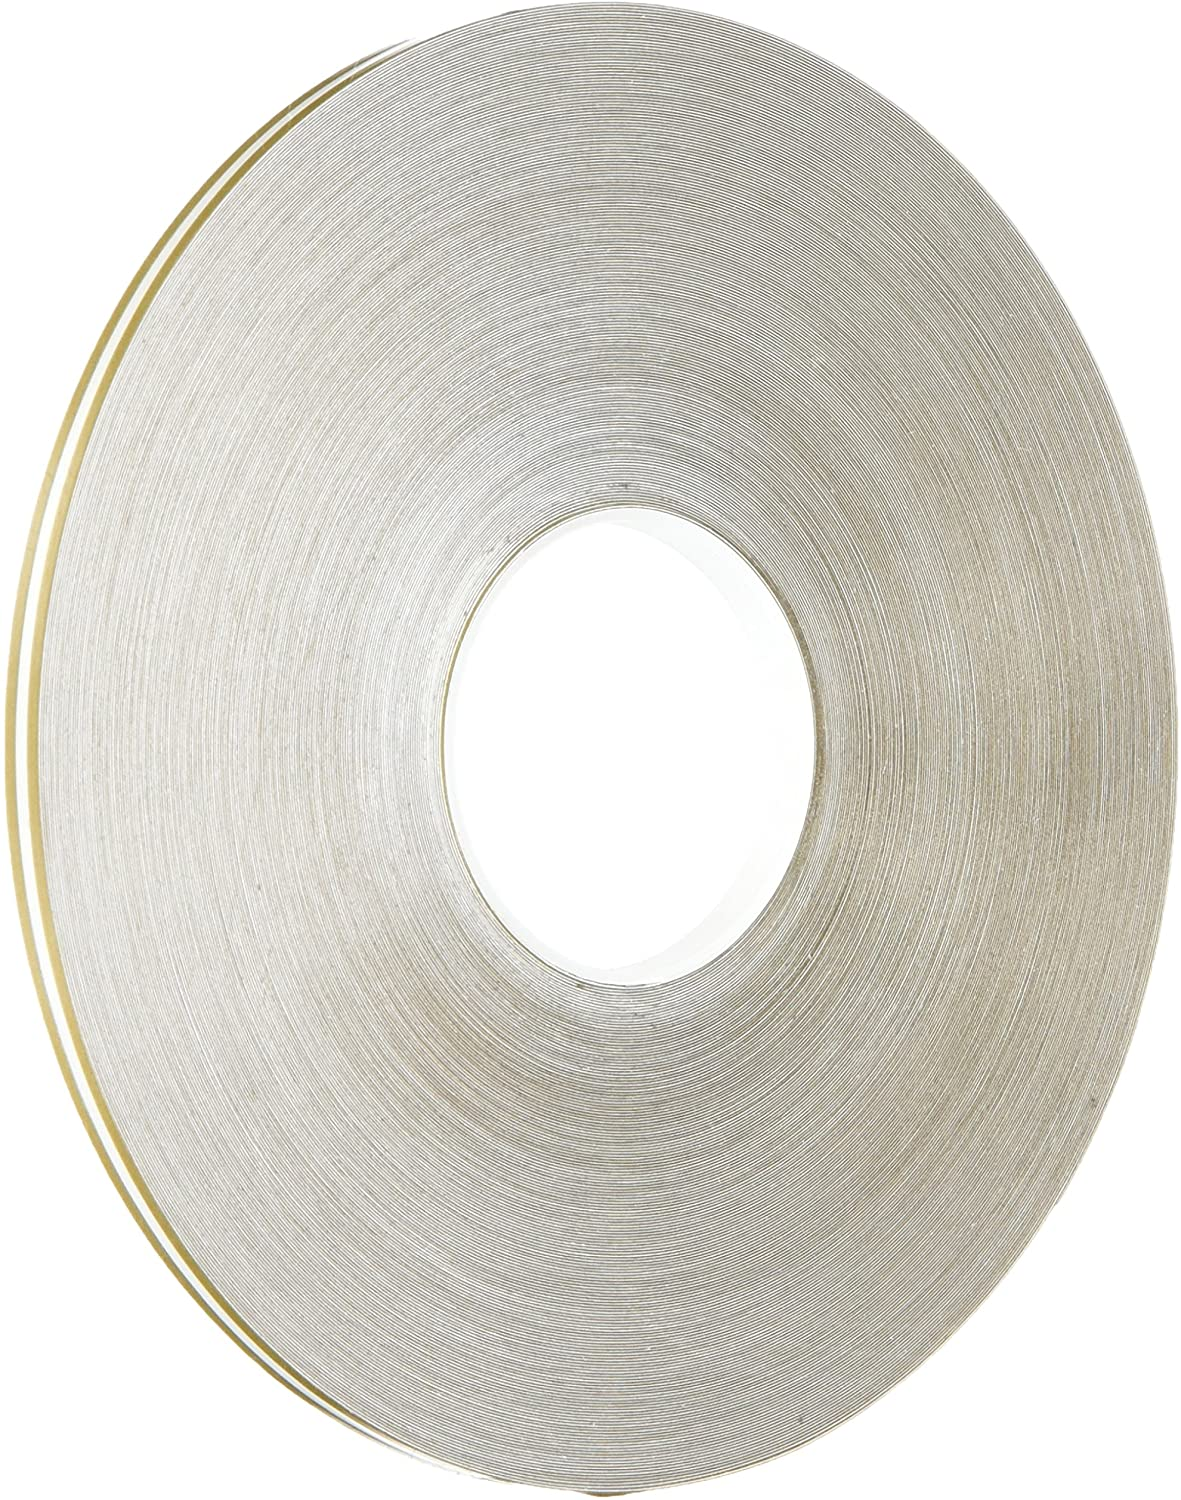 3M 720-03 Striping Tape